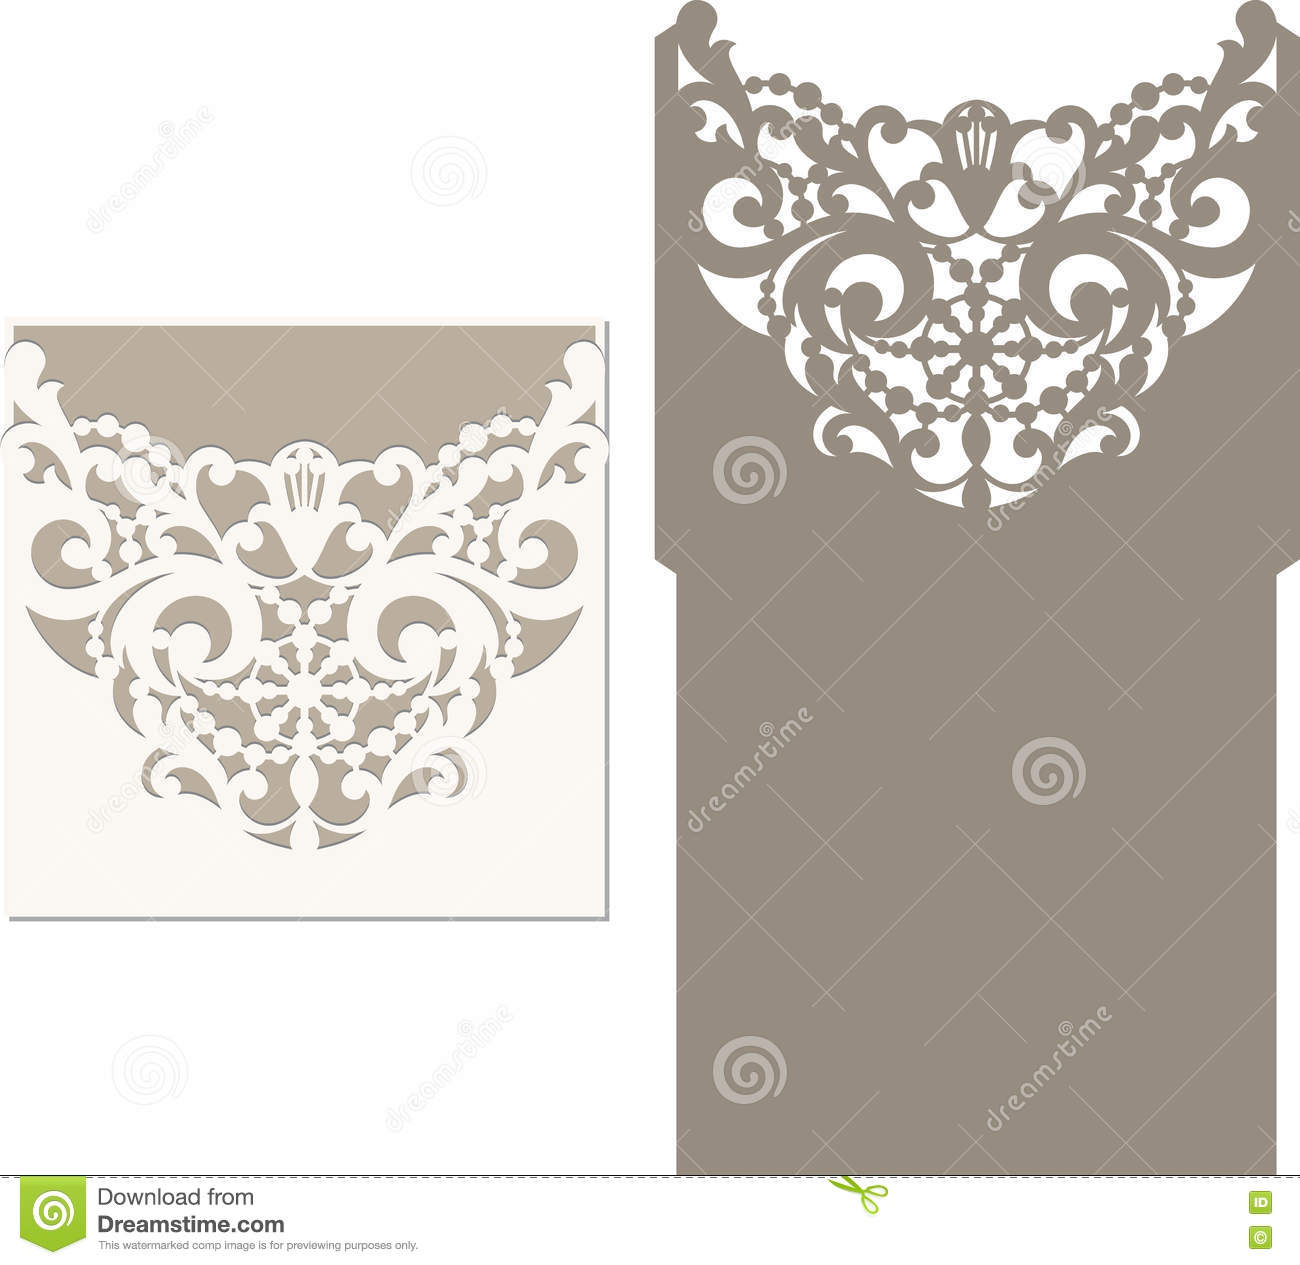 download laser cut envelope template for invitation wedding card stock vector illustration of greeting - Invitation Card Stock